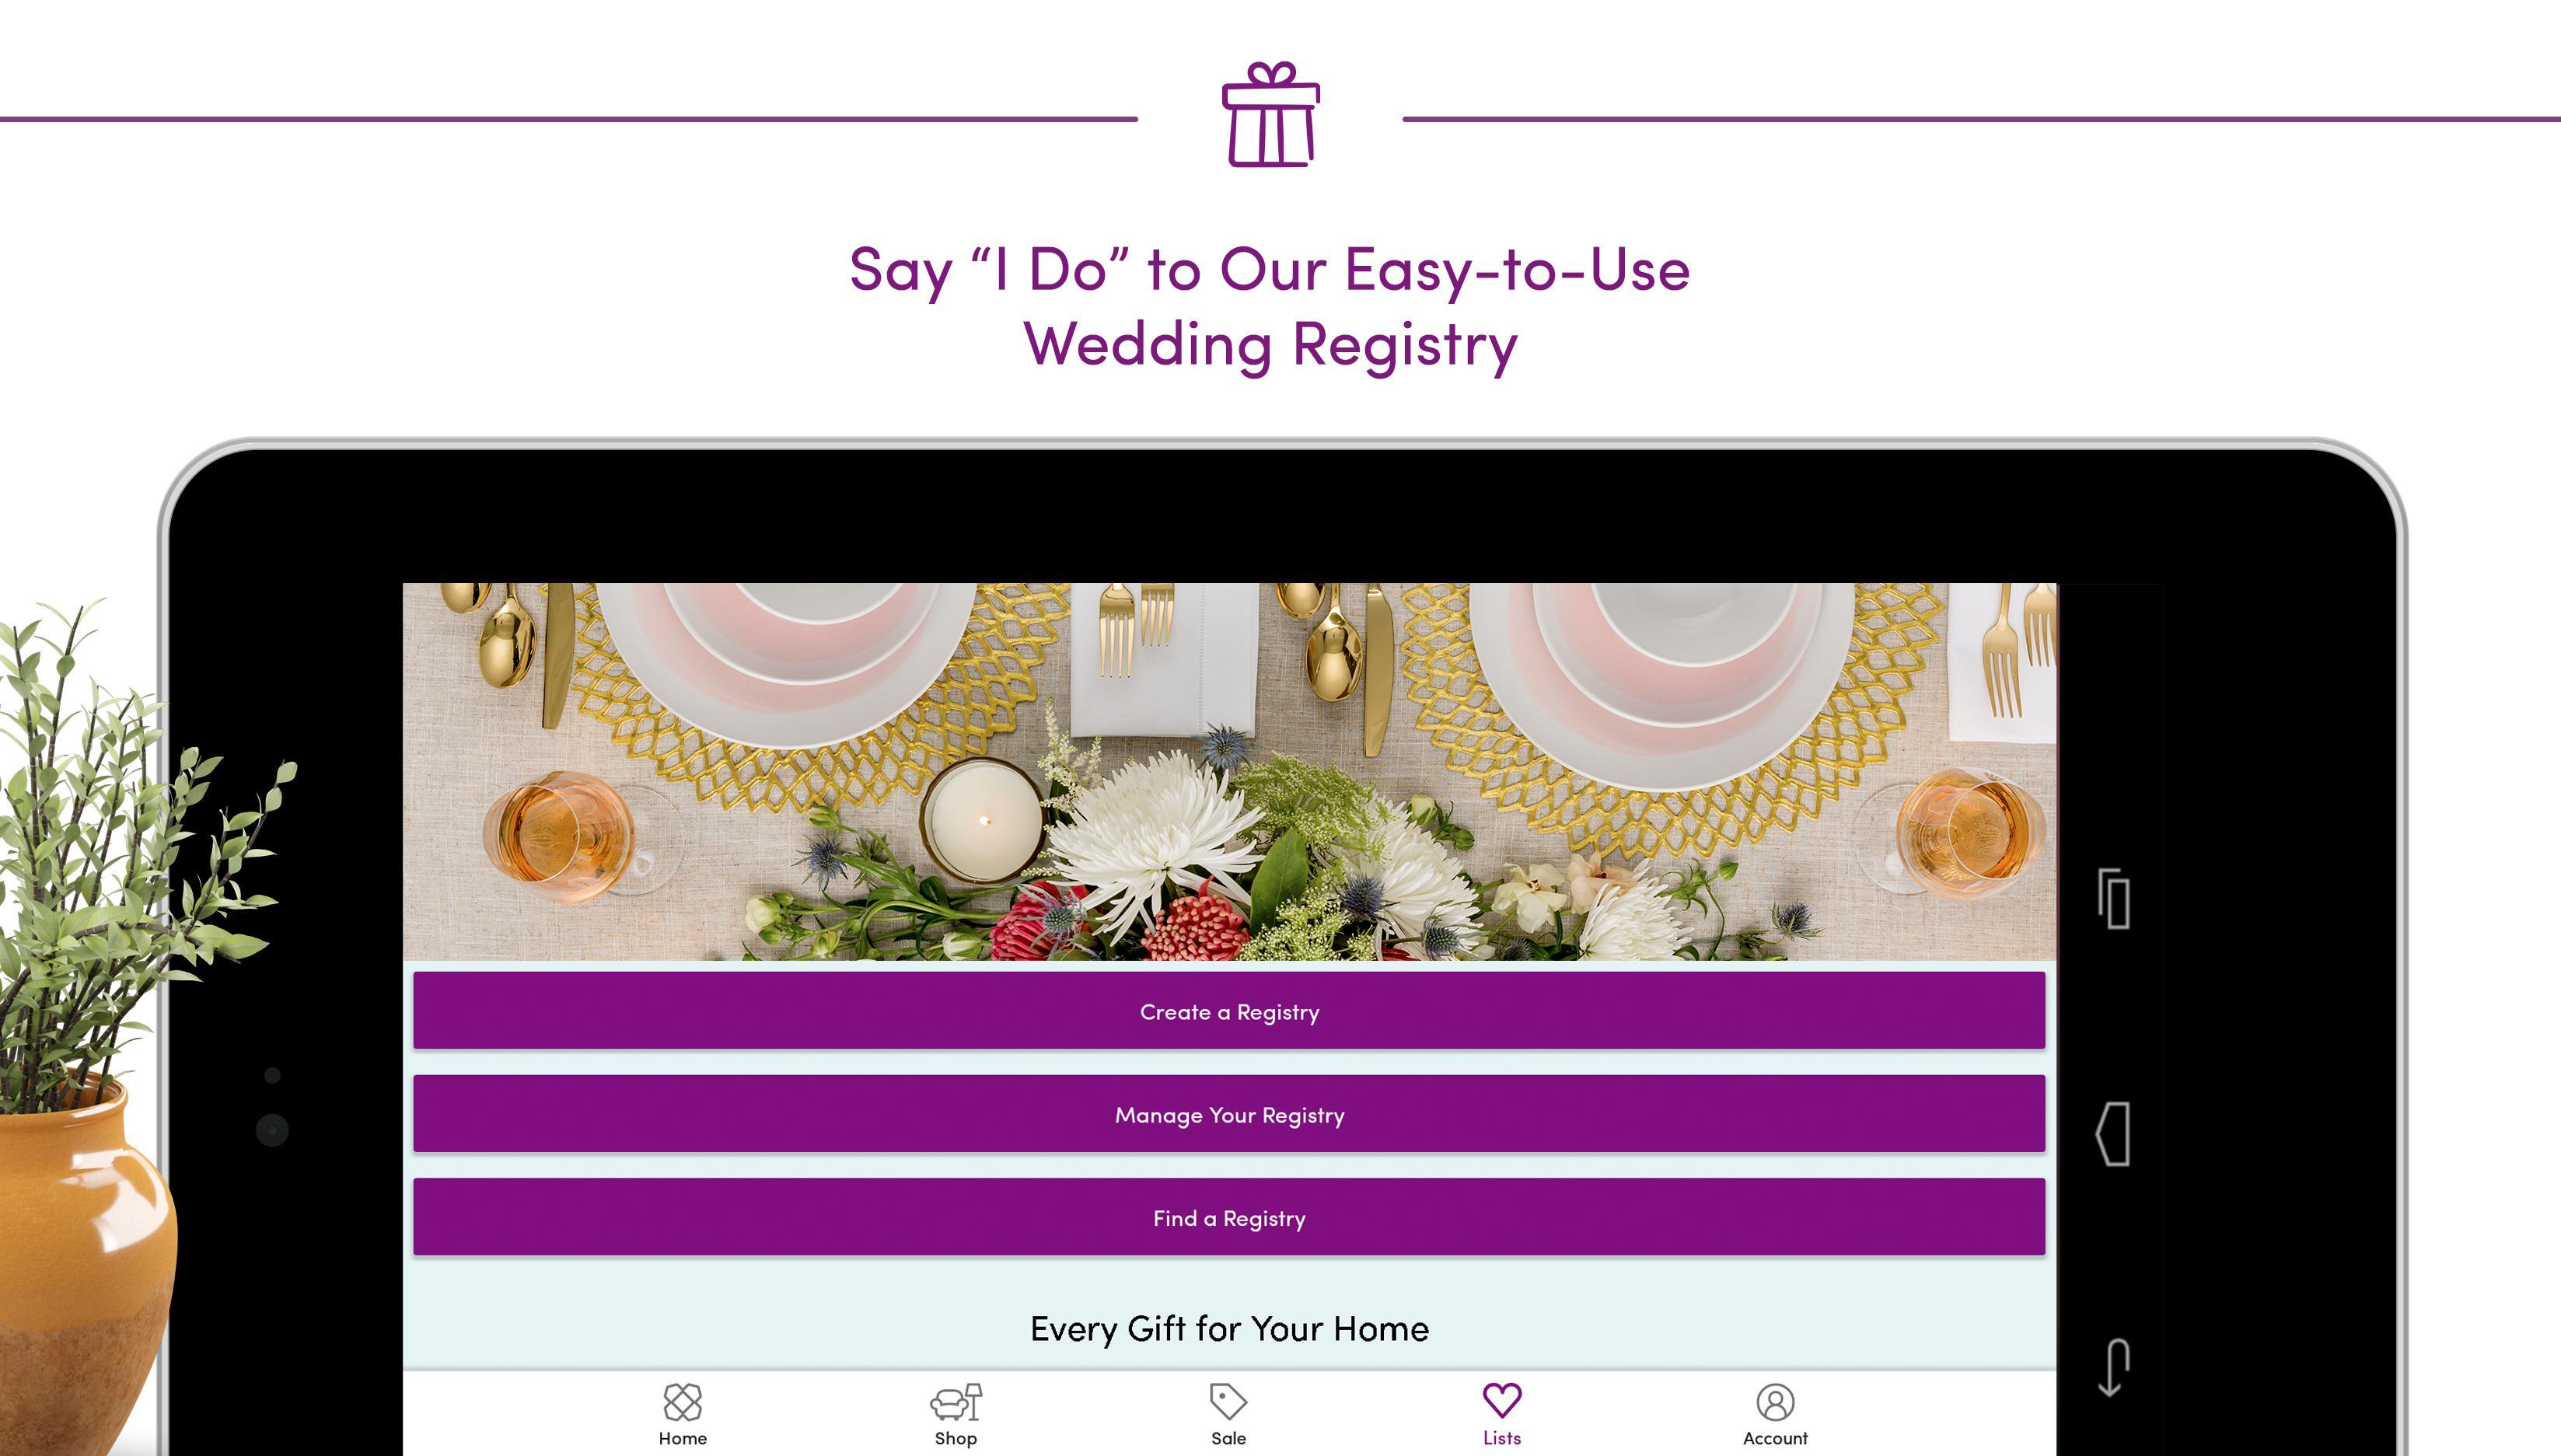 Wayfair Shop All Things Home 5.2.4 Screenshot 14